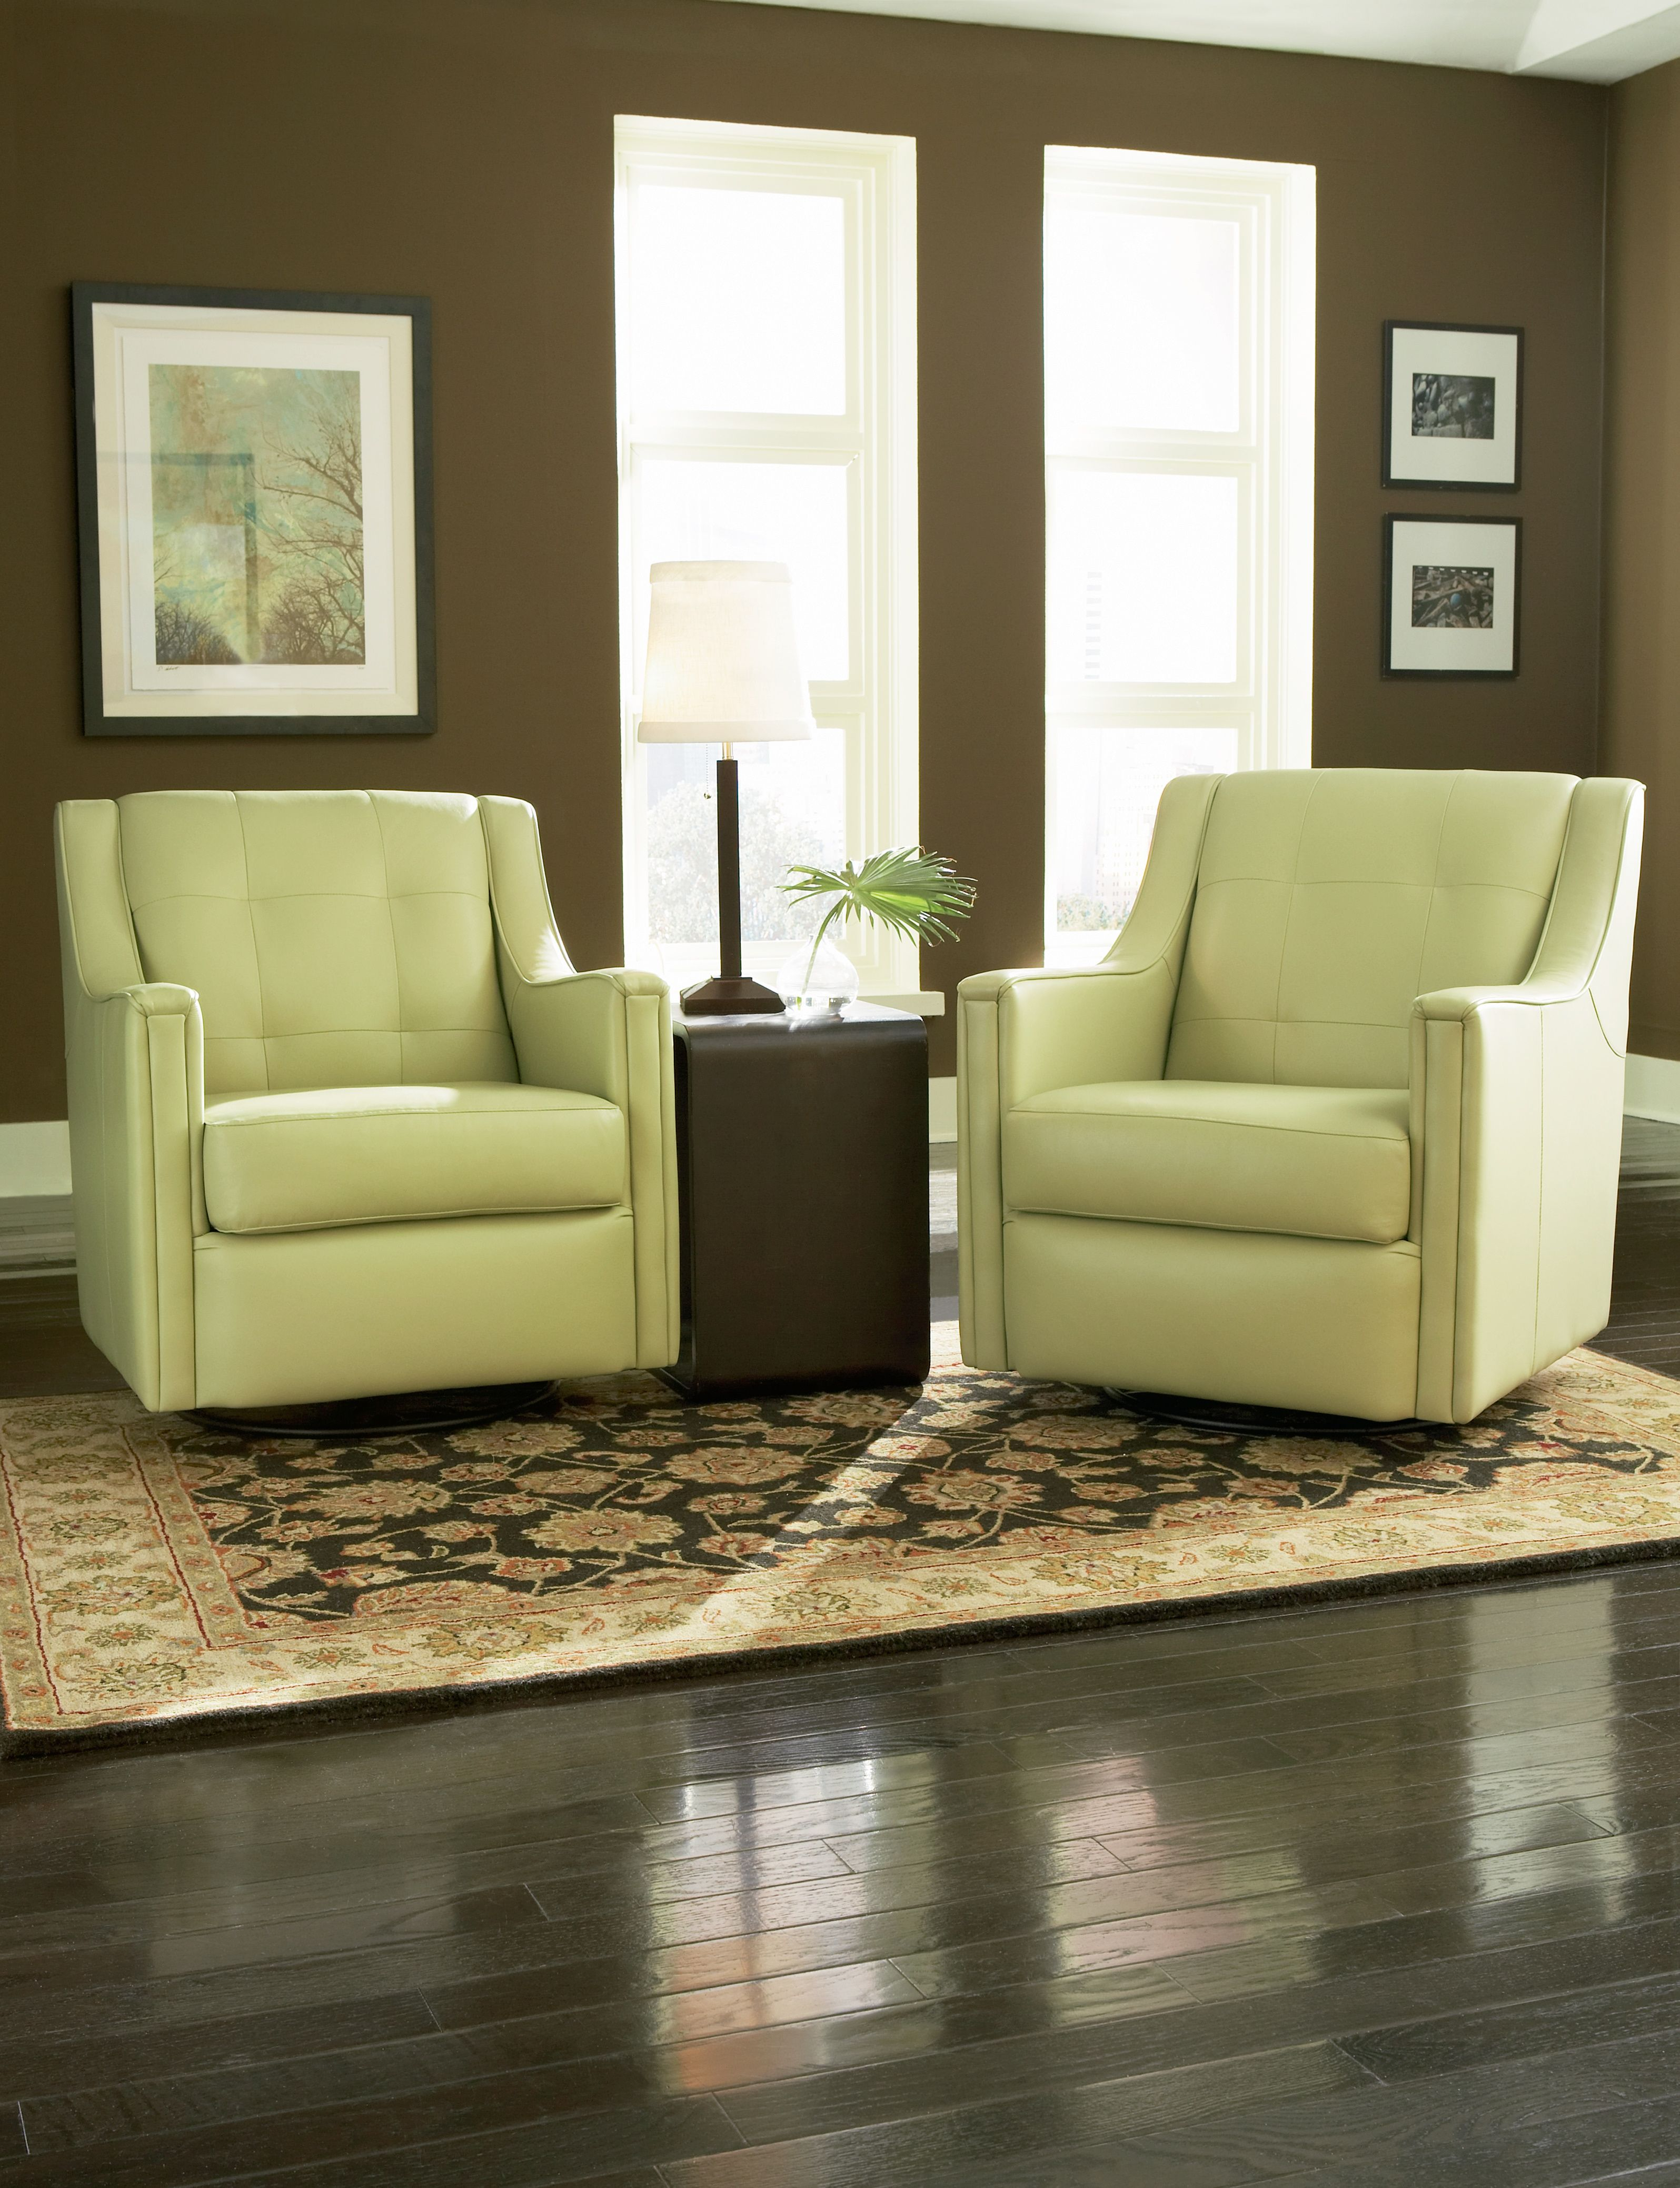 Shop Homemakers Furniture And Interiors Homemakers